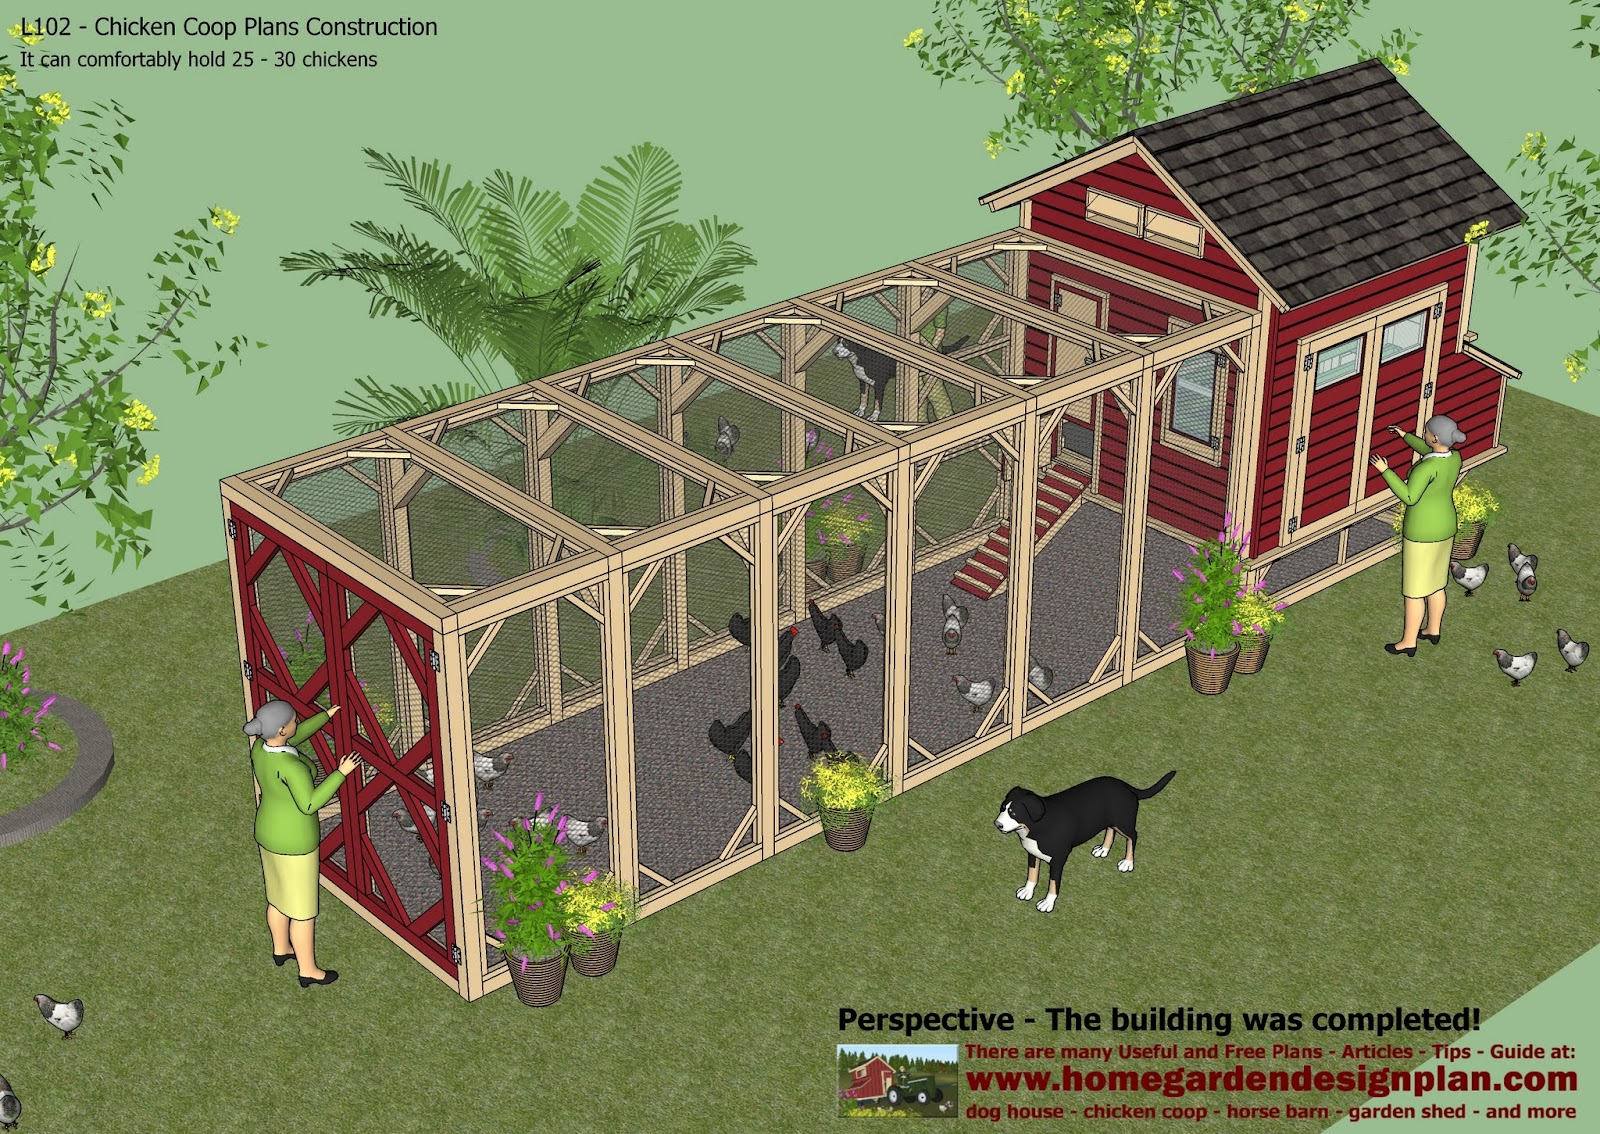 Sntila l102 chicken coop plans construction chicken coop for A frame chicken house